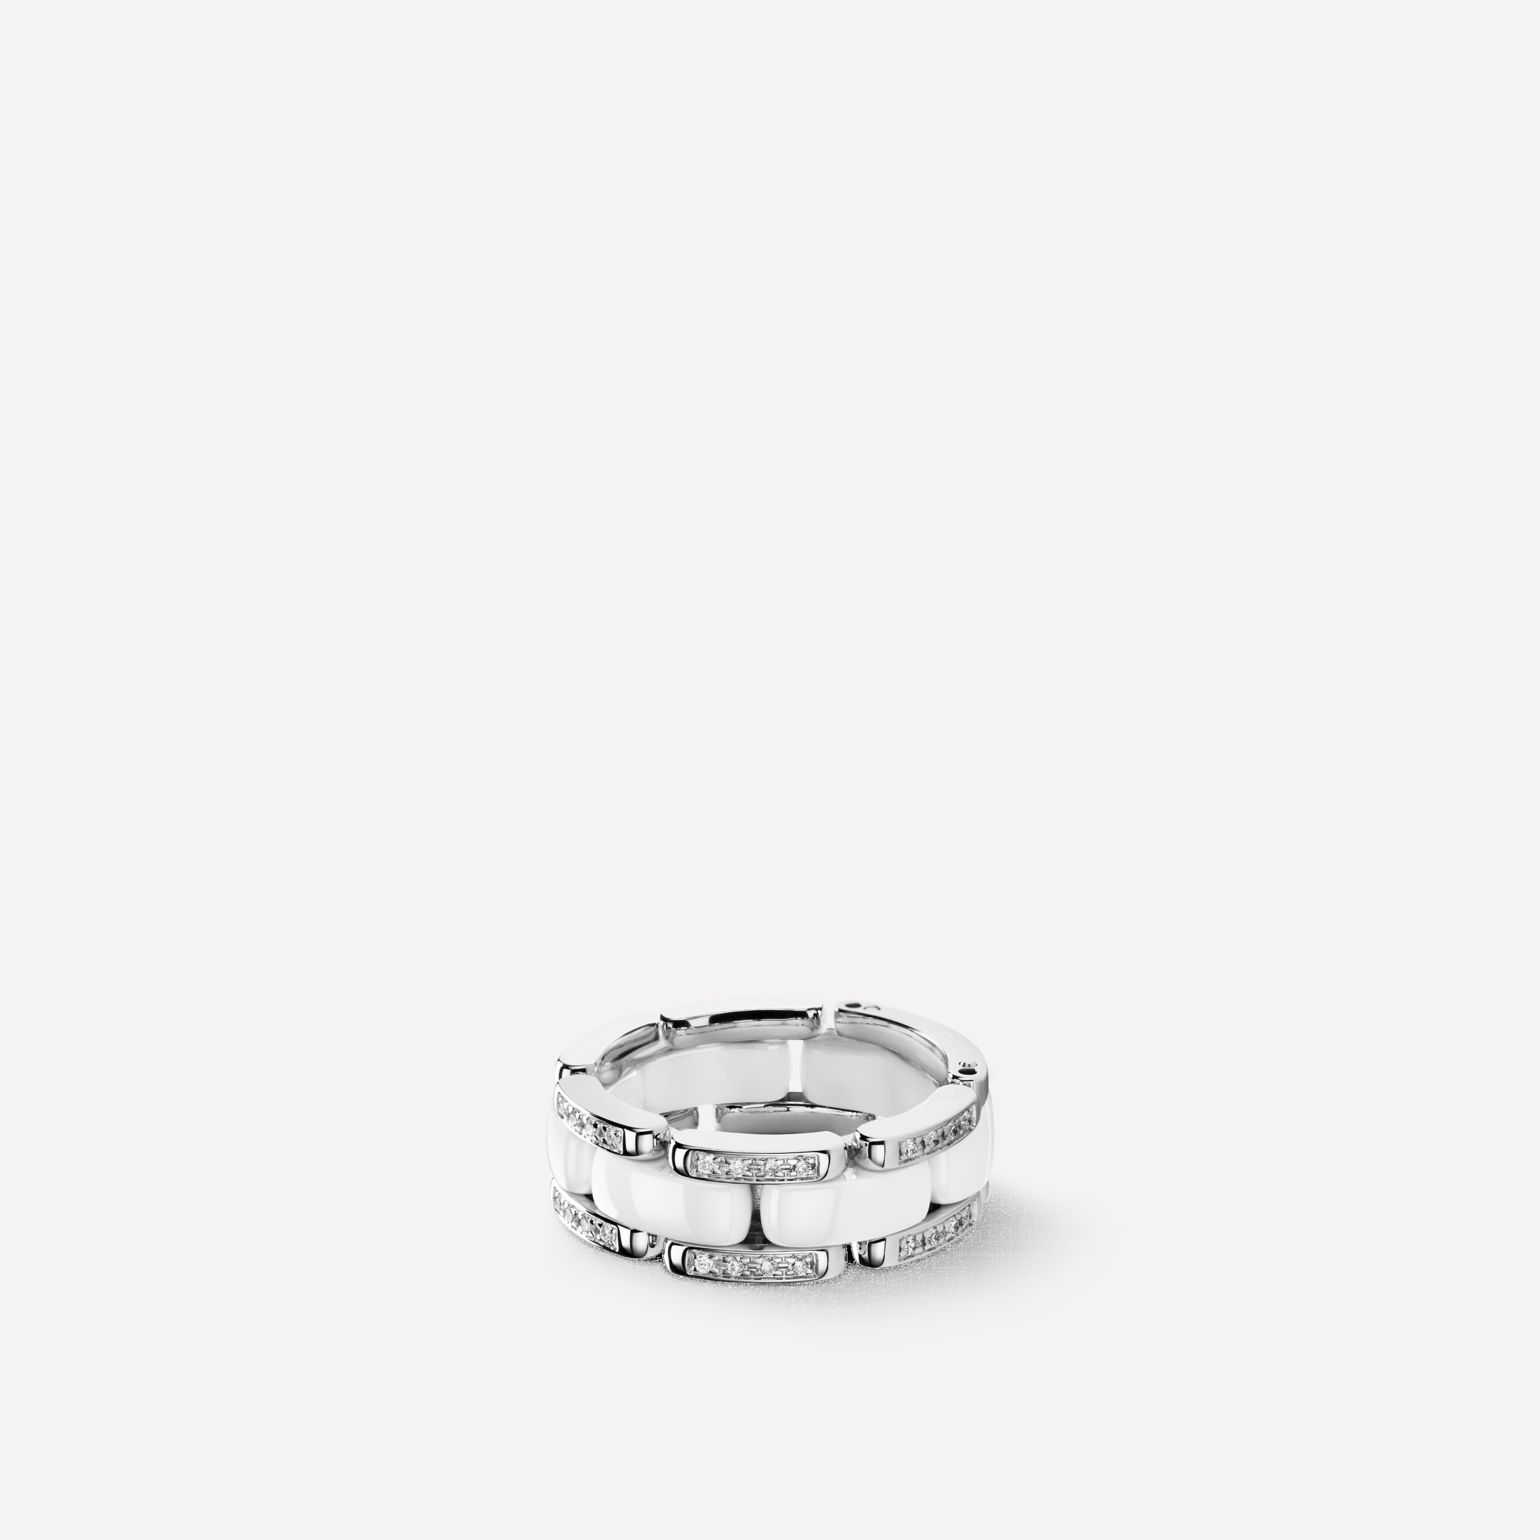 Ultra Ring Ultra ring in white ceramic, 18K white gold and diamonds. Medium, flexible version.